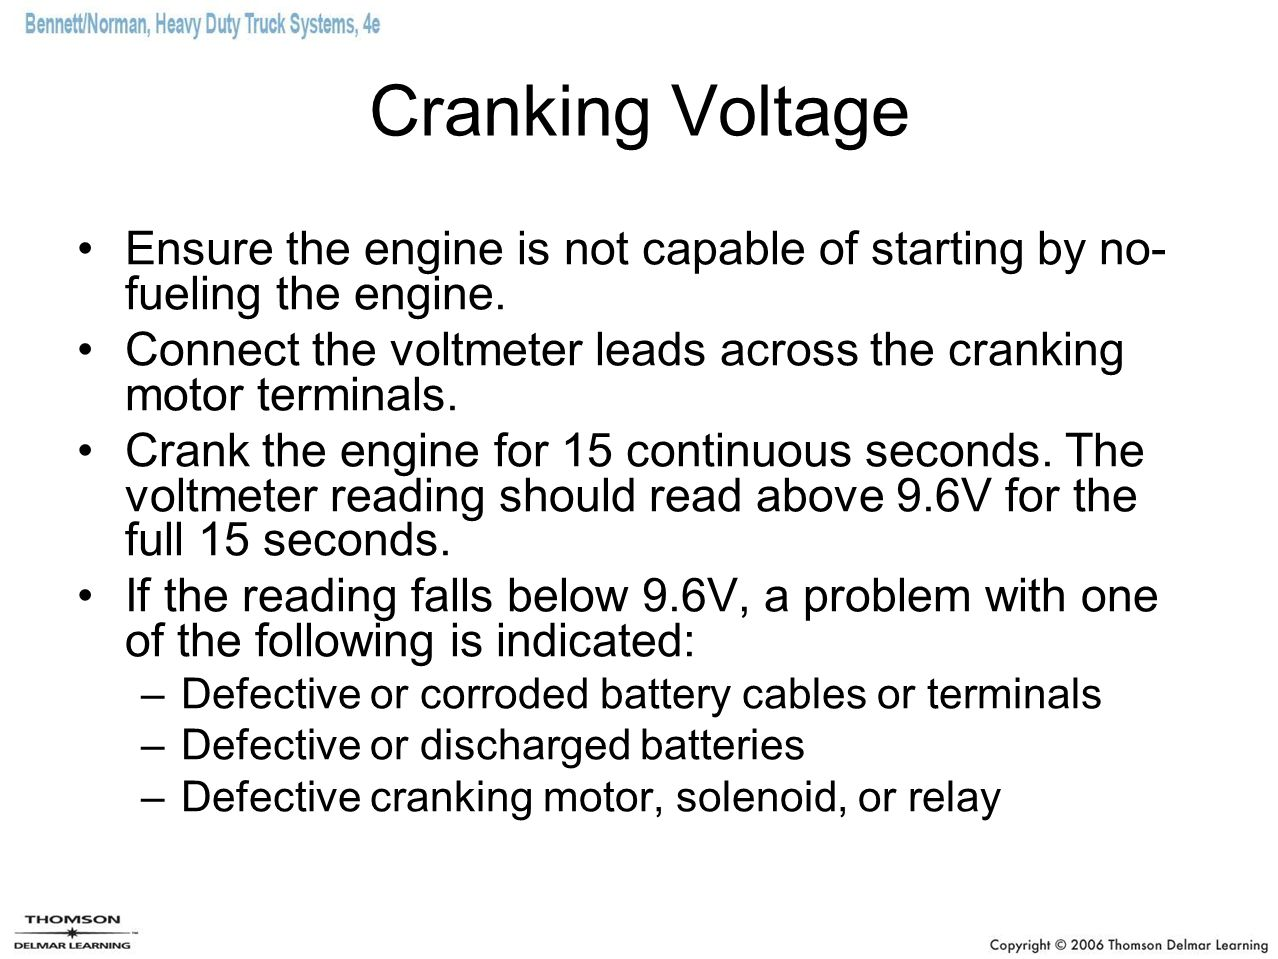 Cranking Voltage Ensure the engine is not capable of starting by no-fueling the engine.